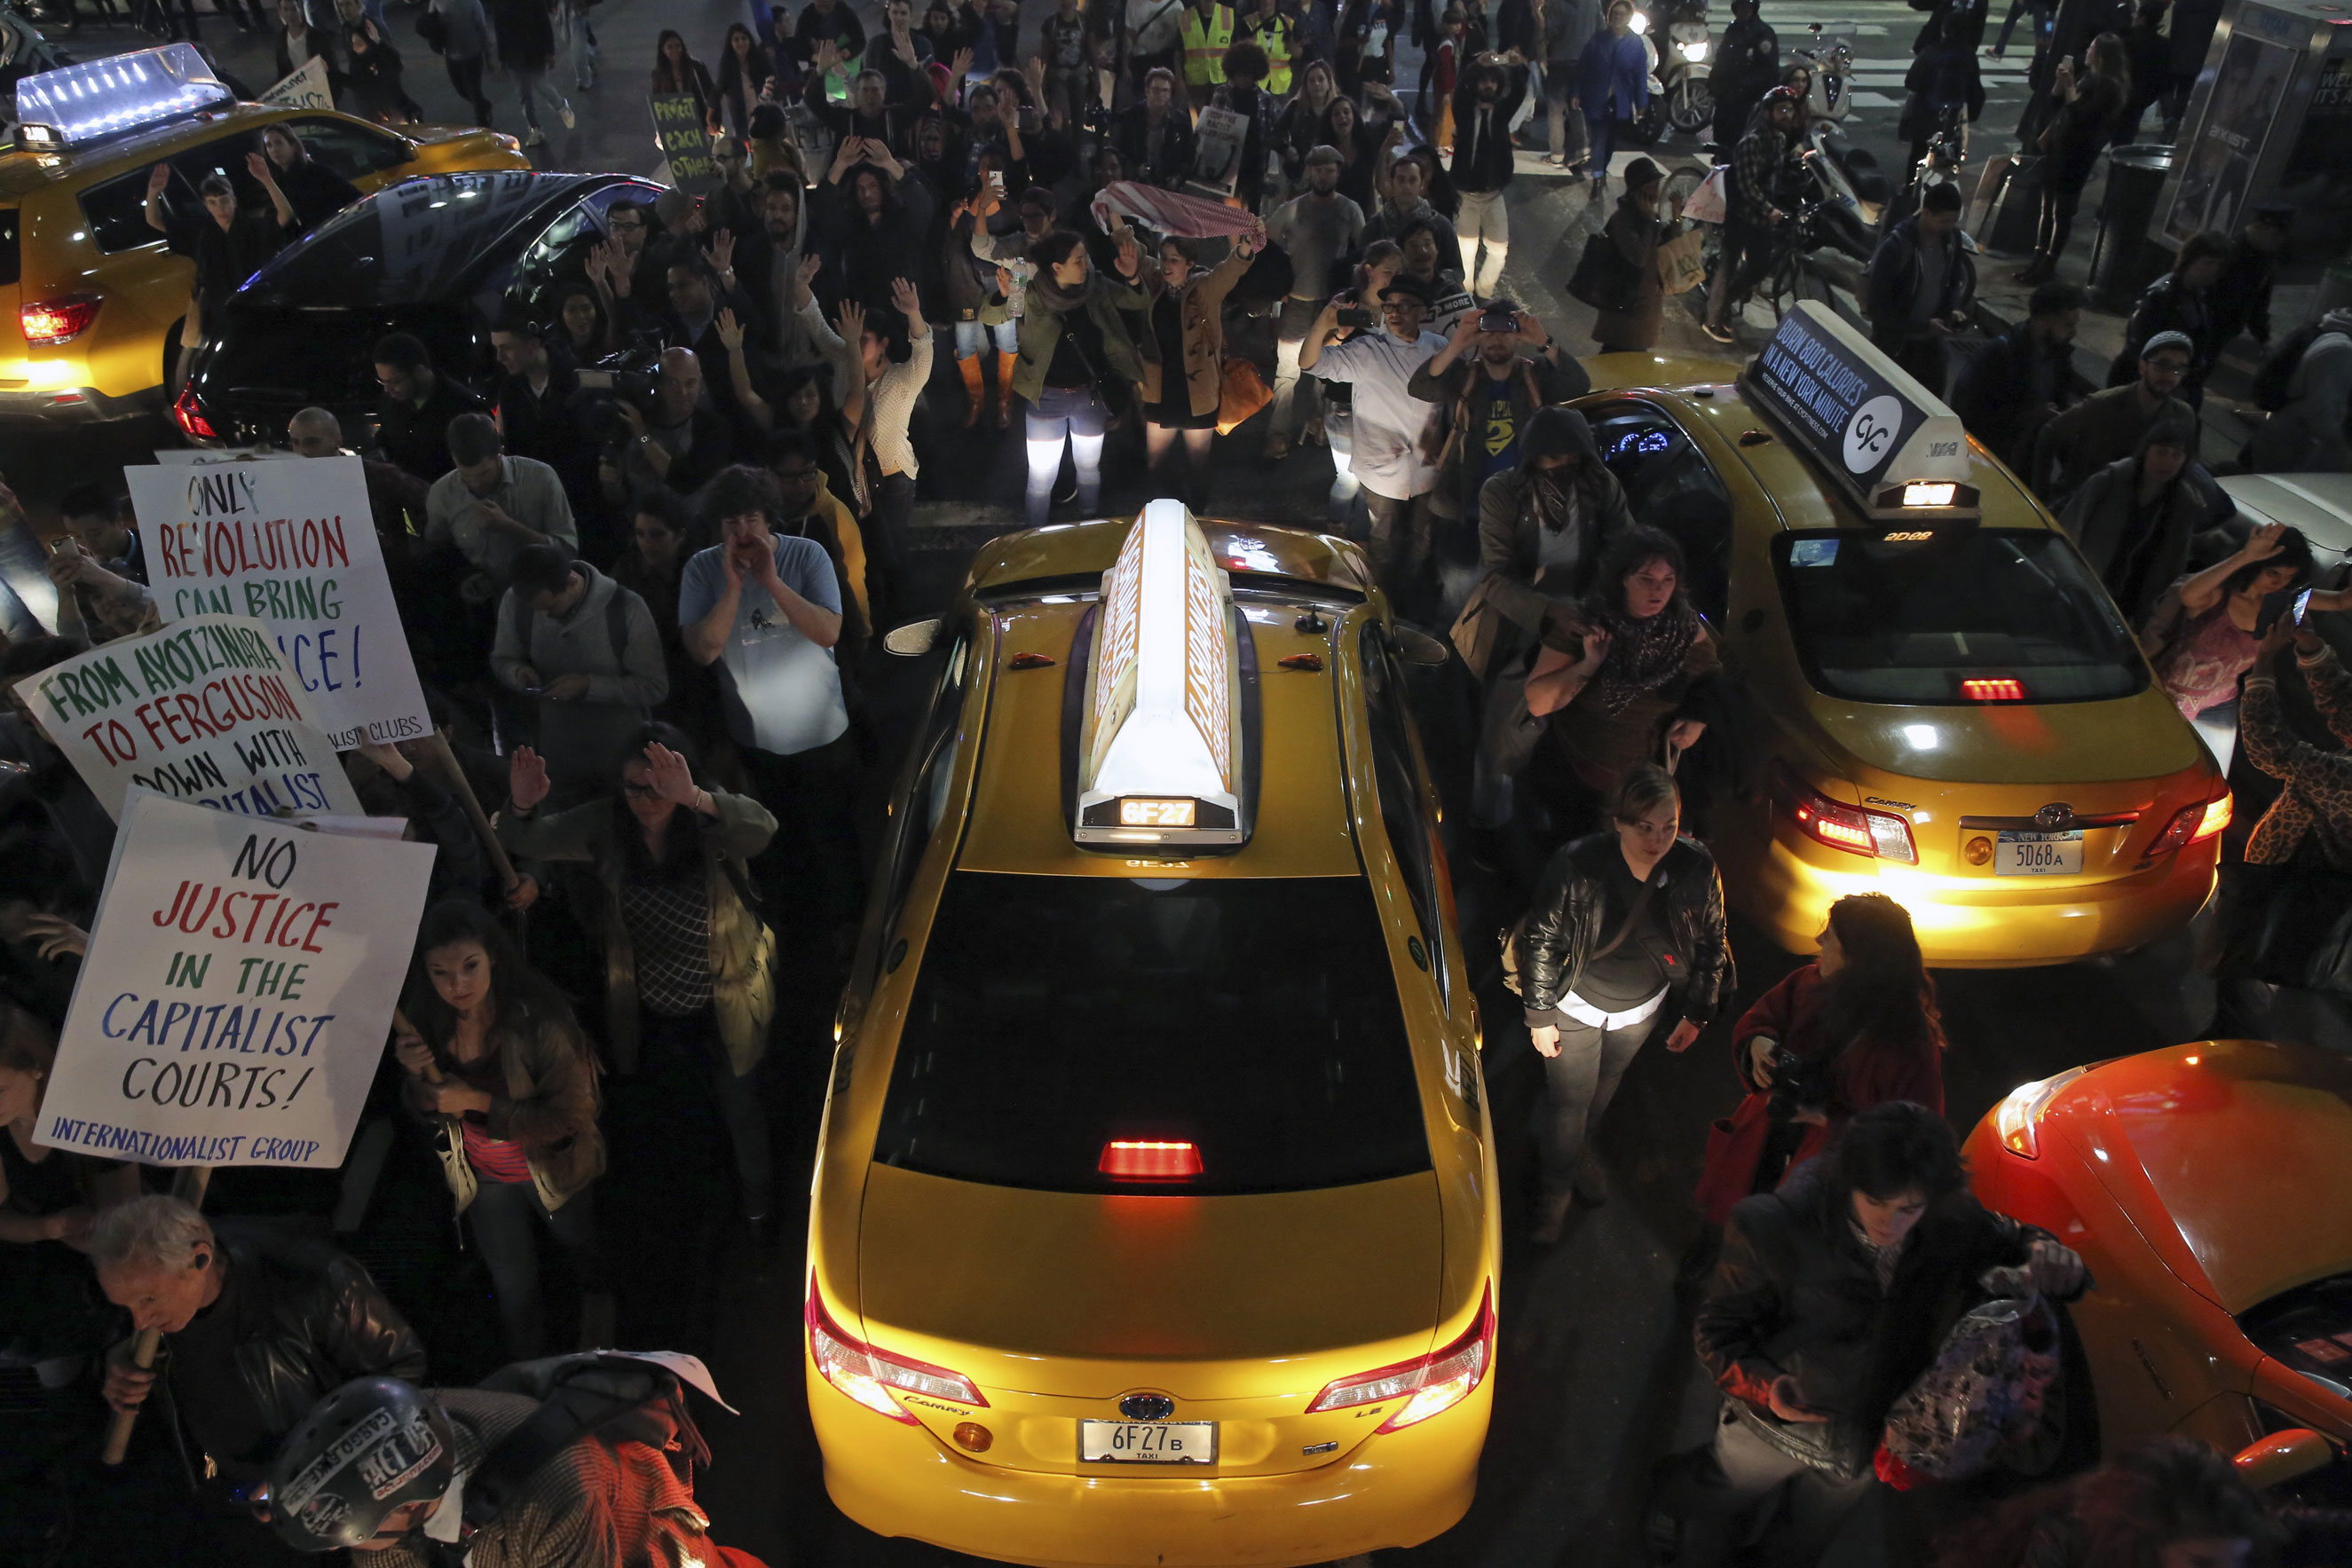 Protesters march around taxis near Times Square in New York City on Nov. 24, 2014.